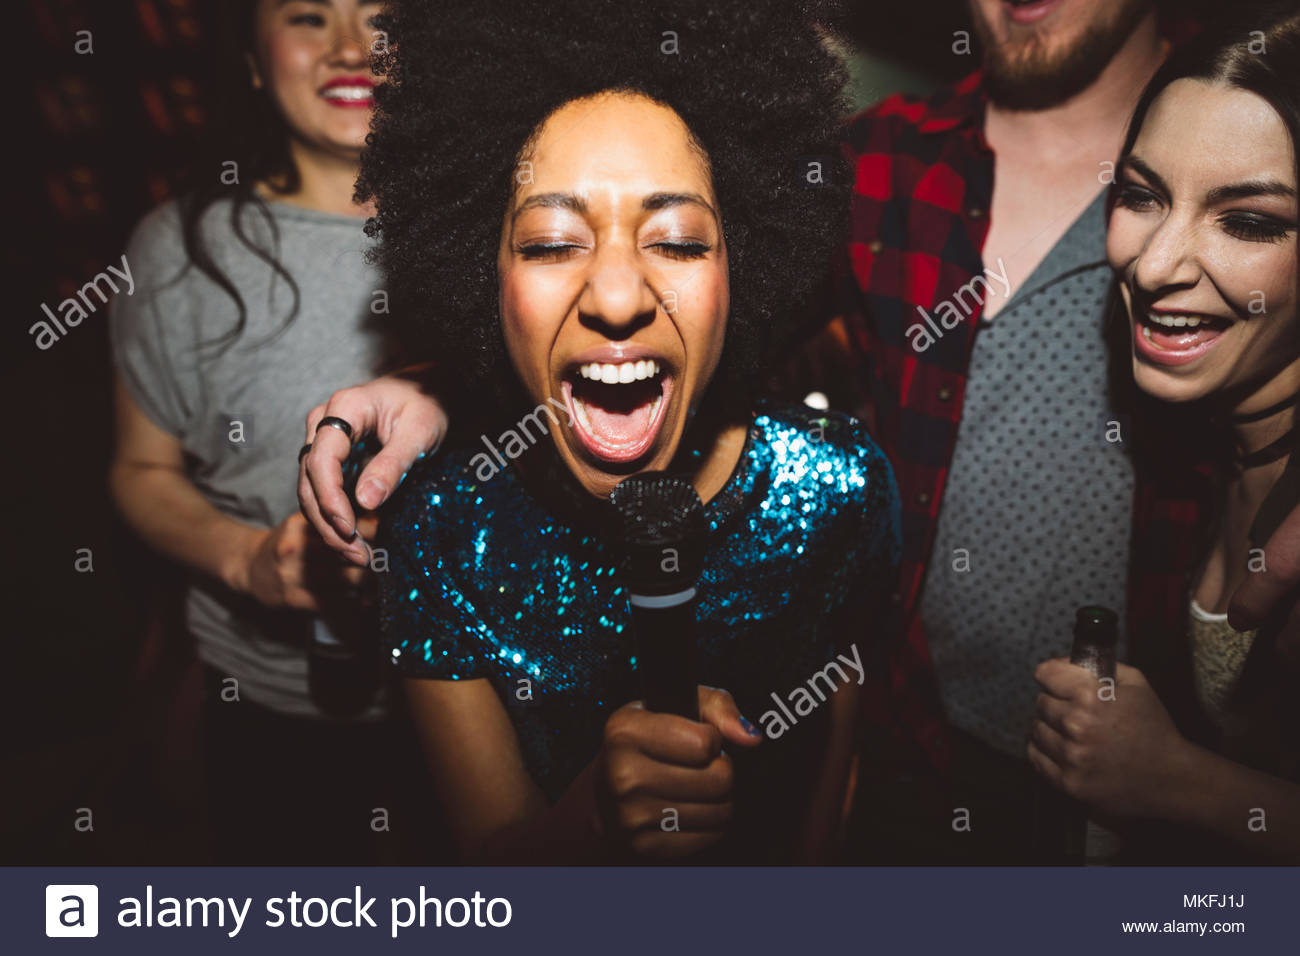 Exuberant young female millennial singing karaoke - Stock Image